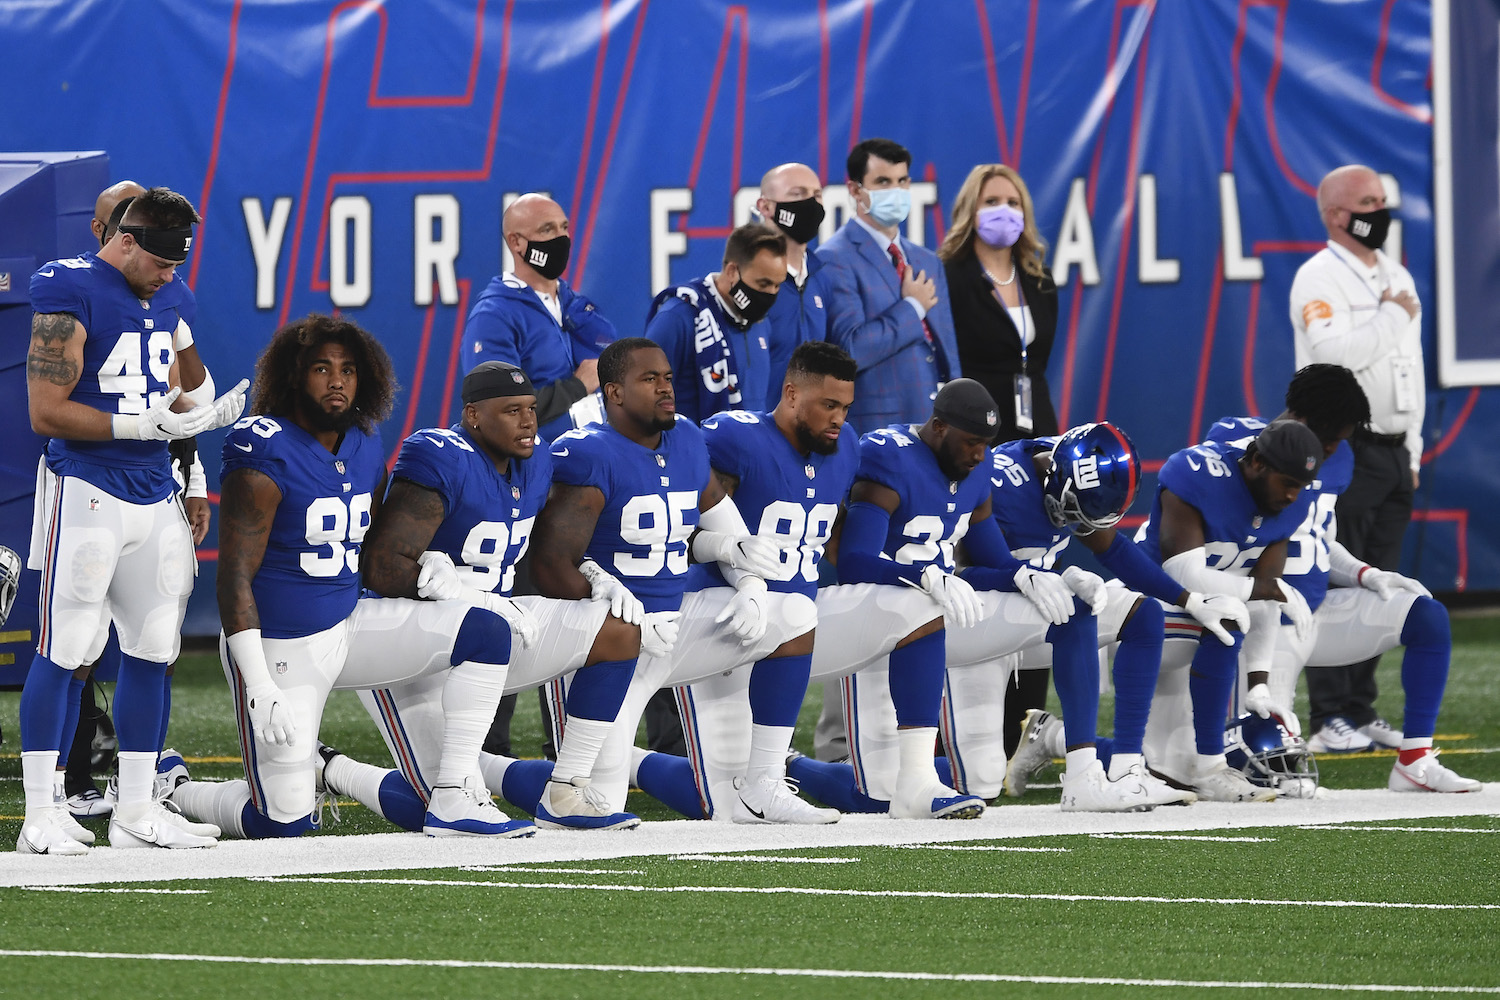 NFL ratings drop due to player protest